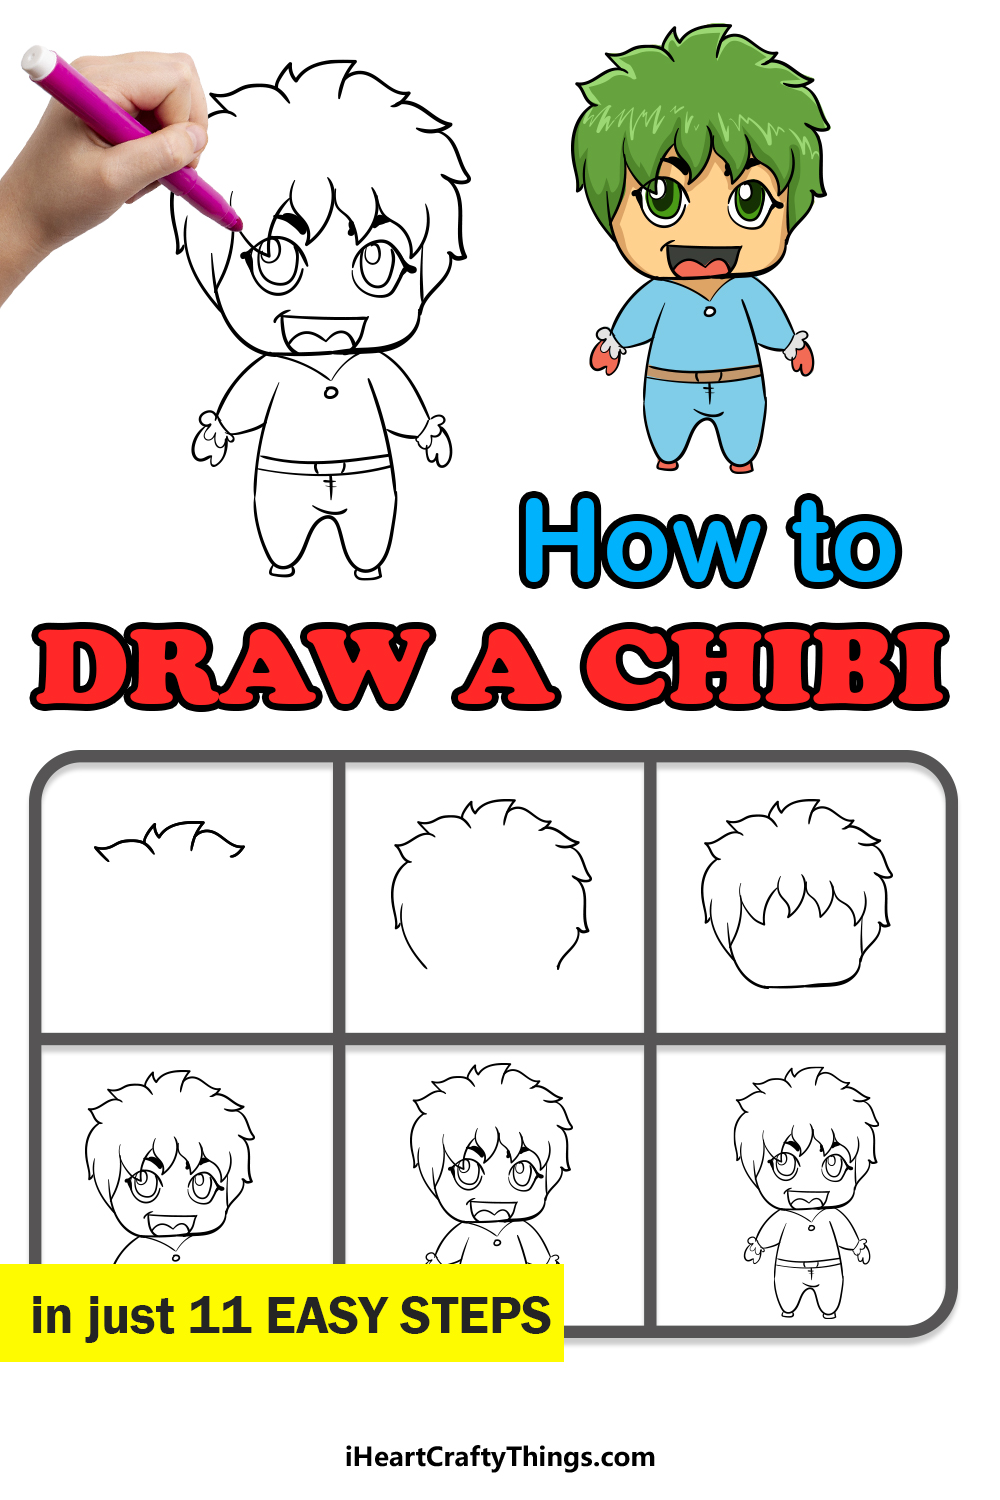 how to draw a chibi in 11 easy steps